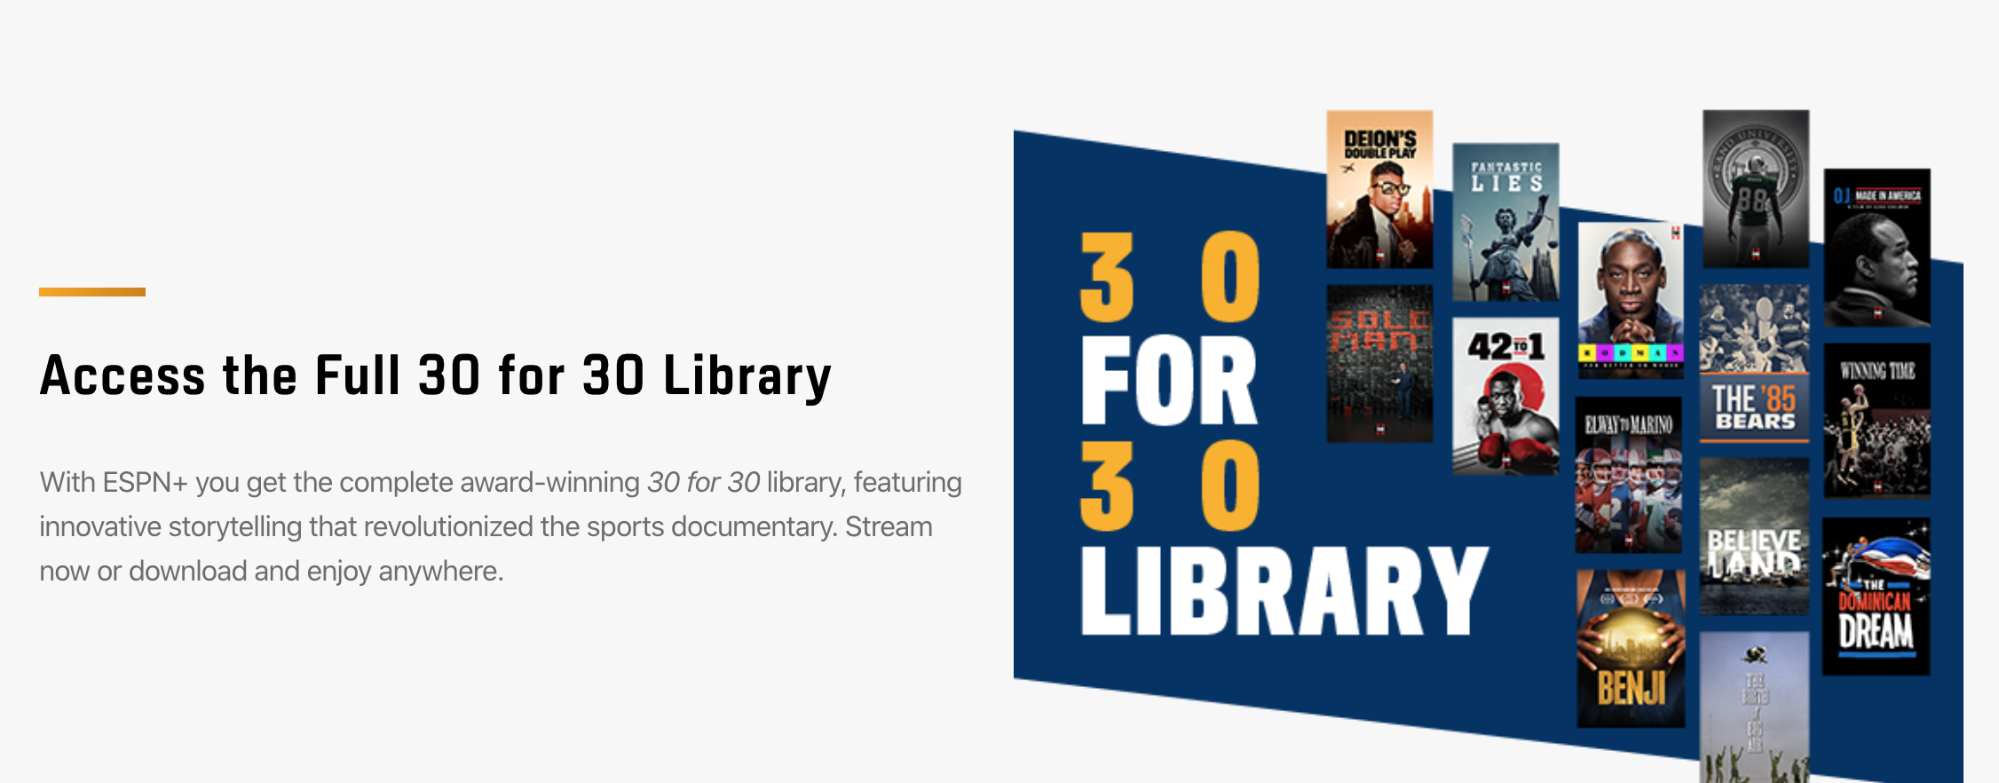 30 to 30 library - espn plus